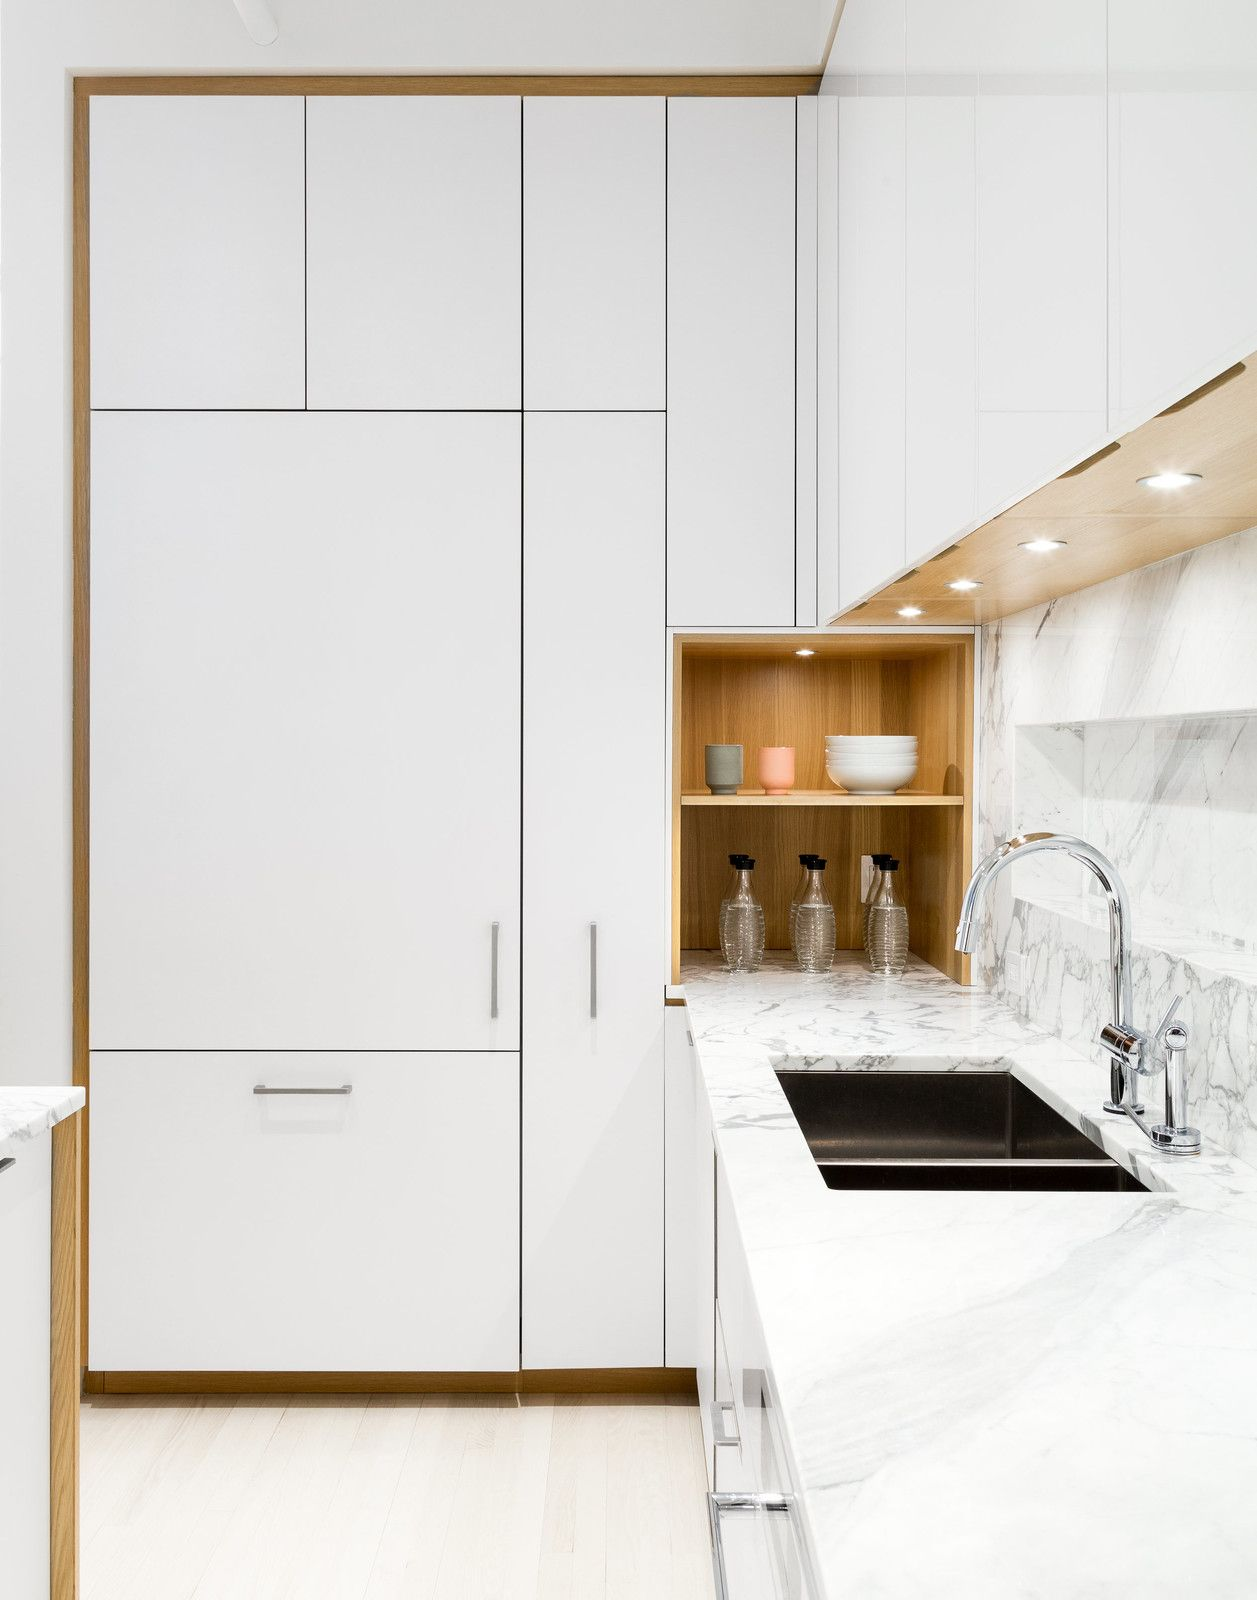 Free woodworking plans for kitchen cabinets sinpa - The Kitchen Was Designed In Collaboration With Henrybuilt The Laminate Cabinets Are Paired With A